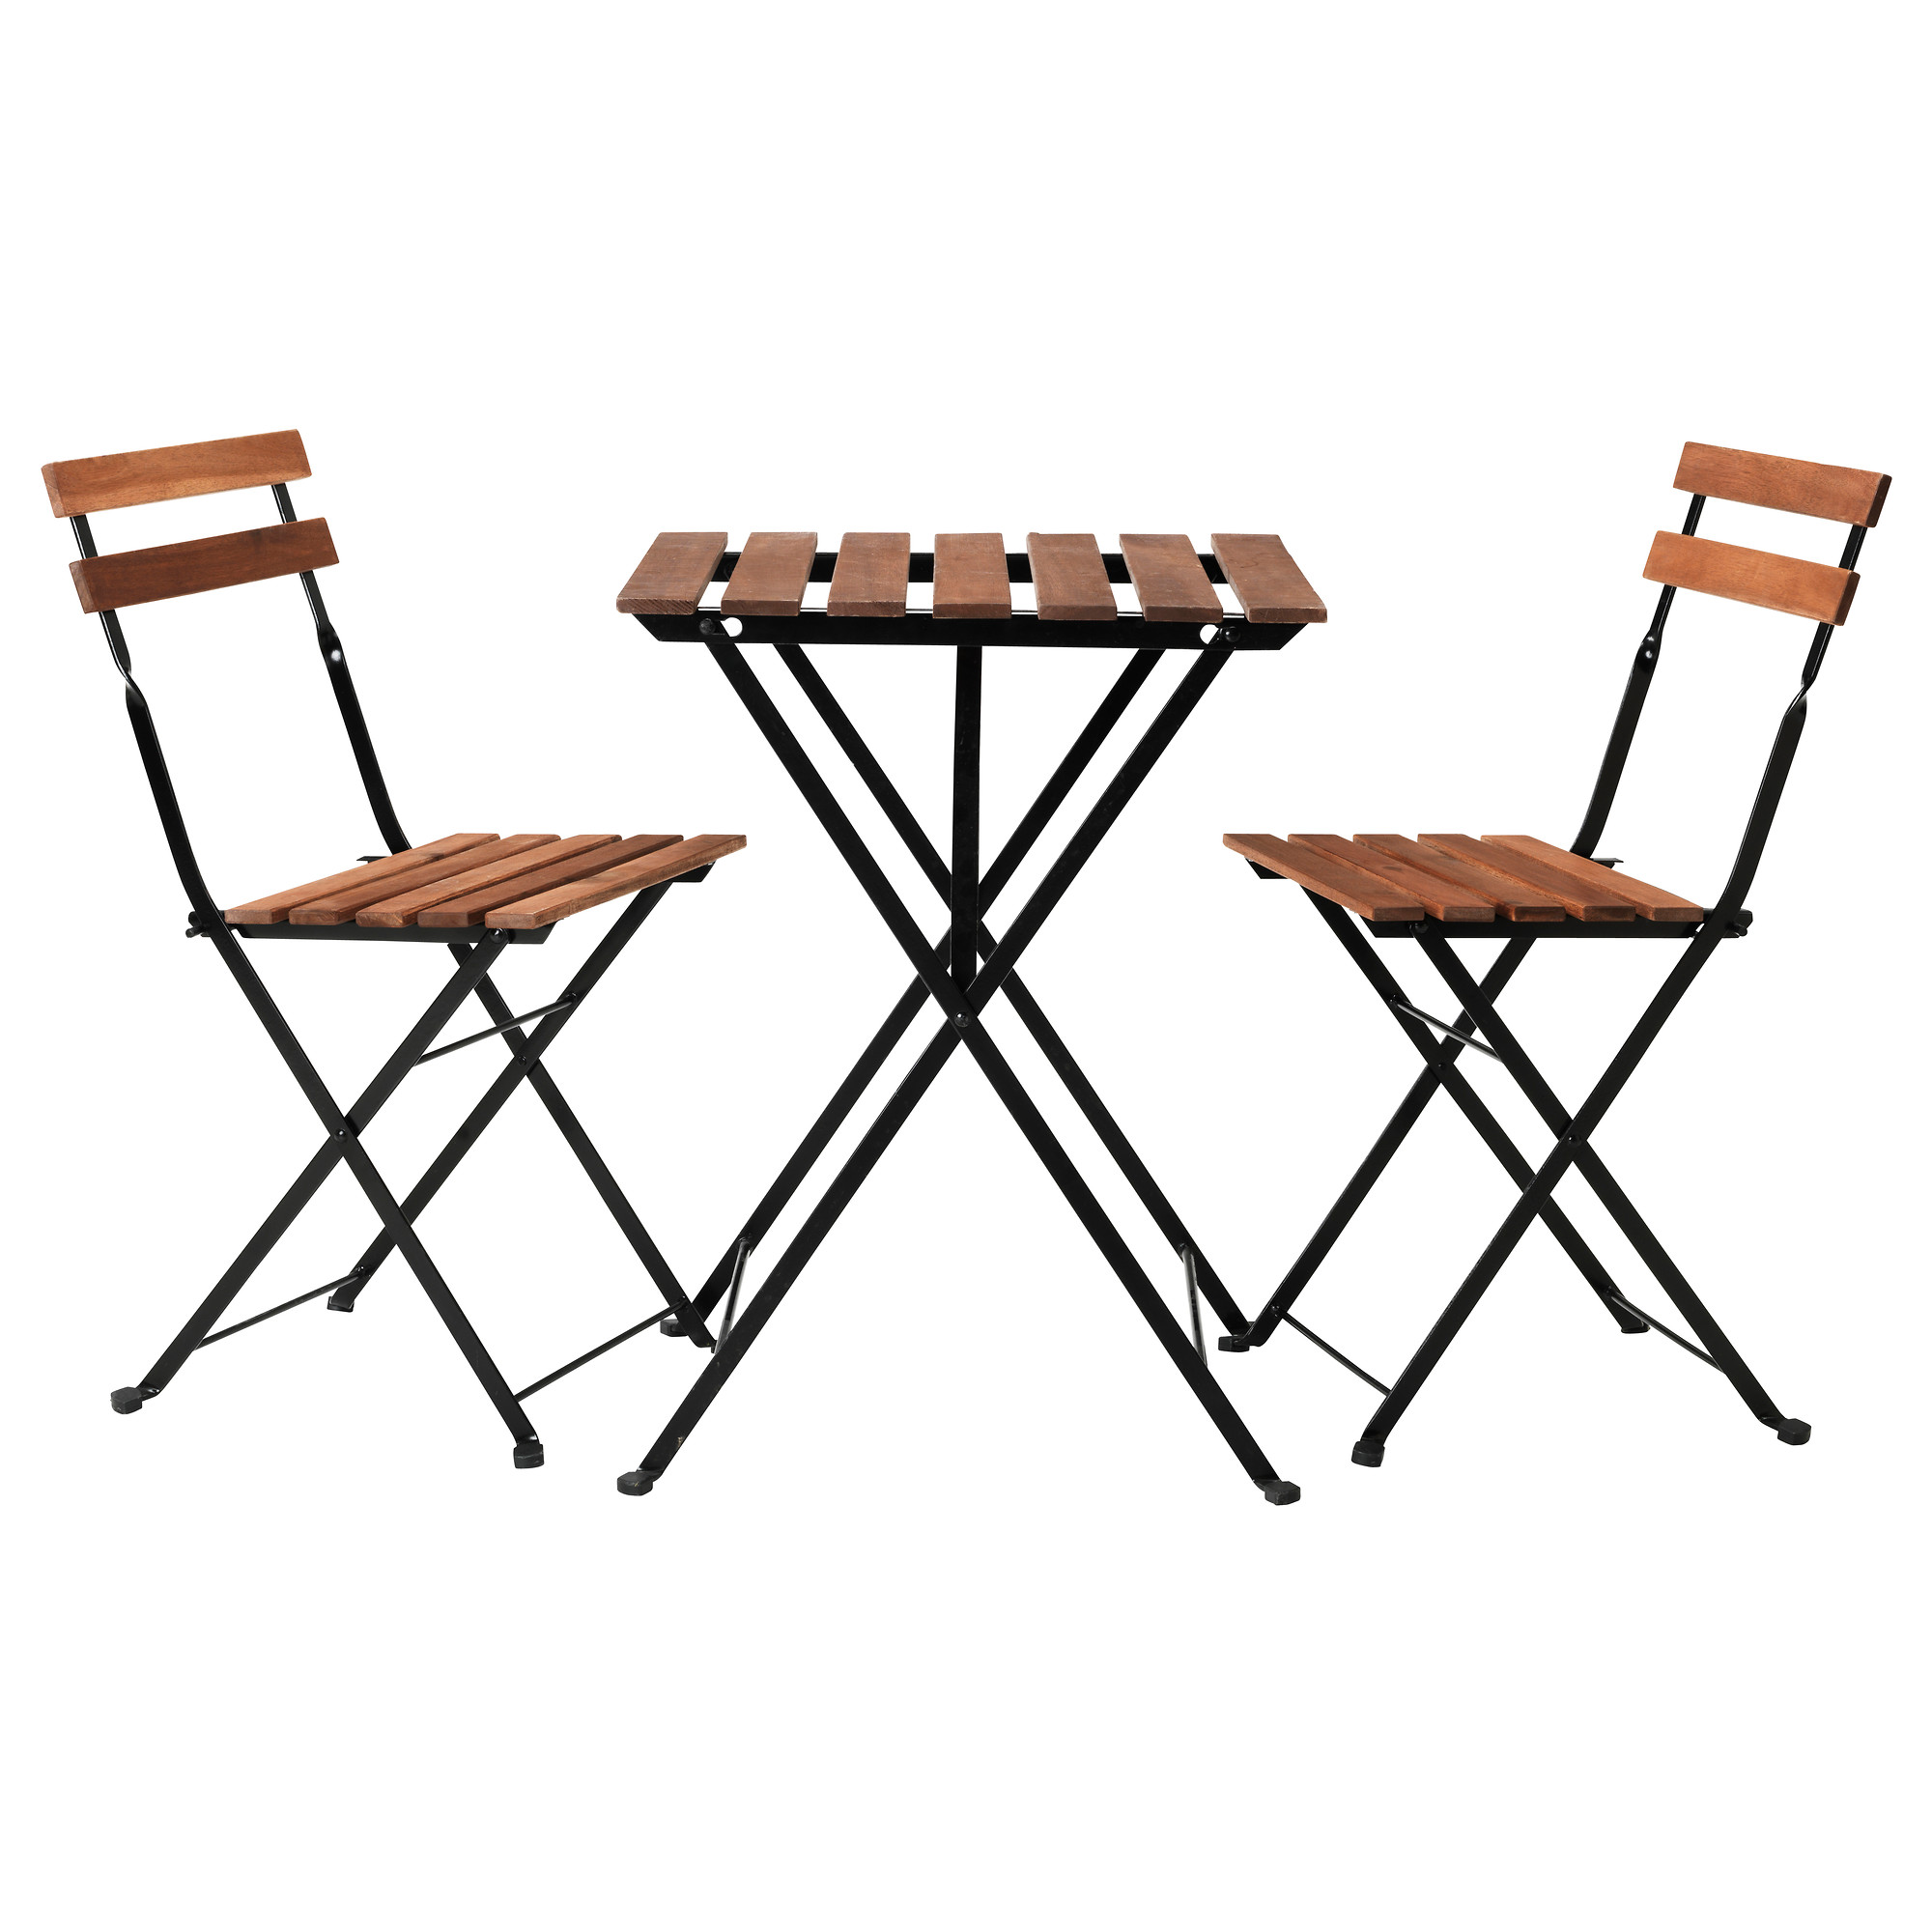 TÄRNÖ, table+7 chairs, outdoor, black/grey-brown stained